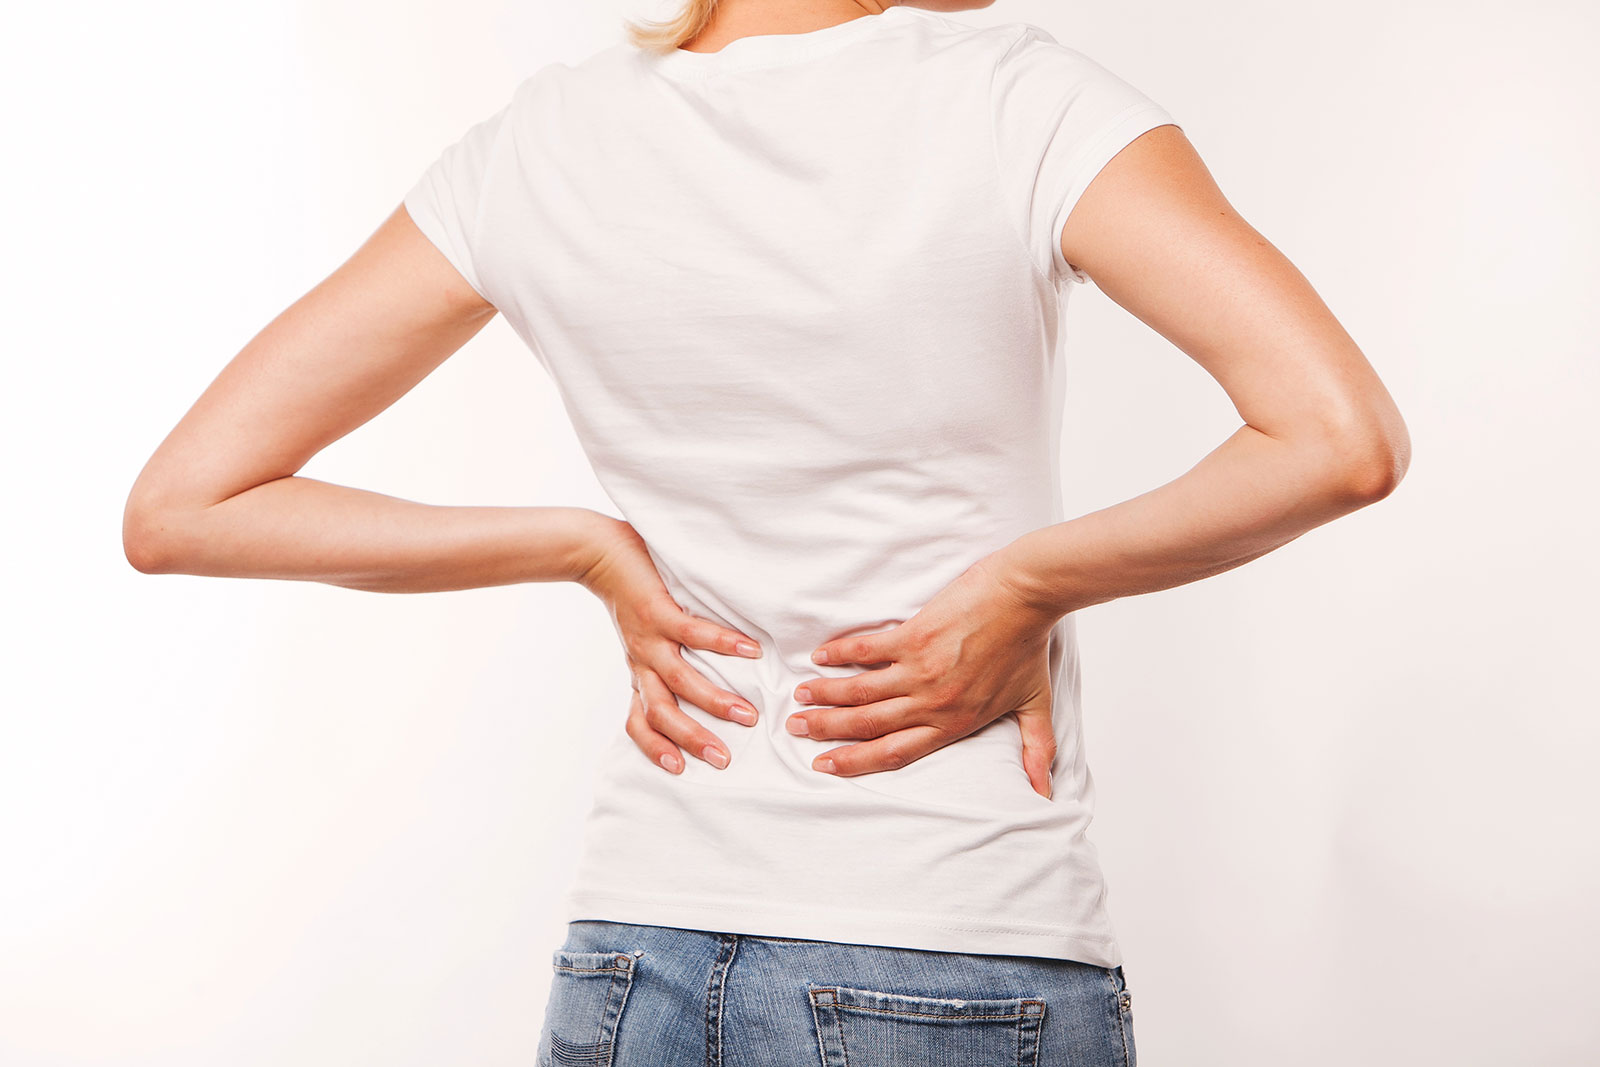 Healing_Sciatic_Pain_Naturally_And_Holistically_03_22_21-1600